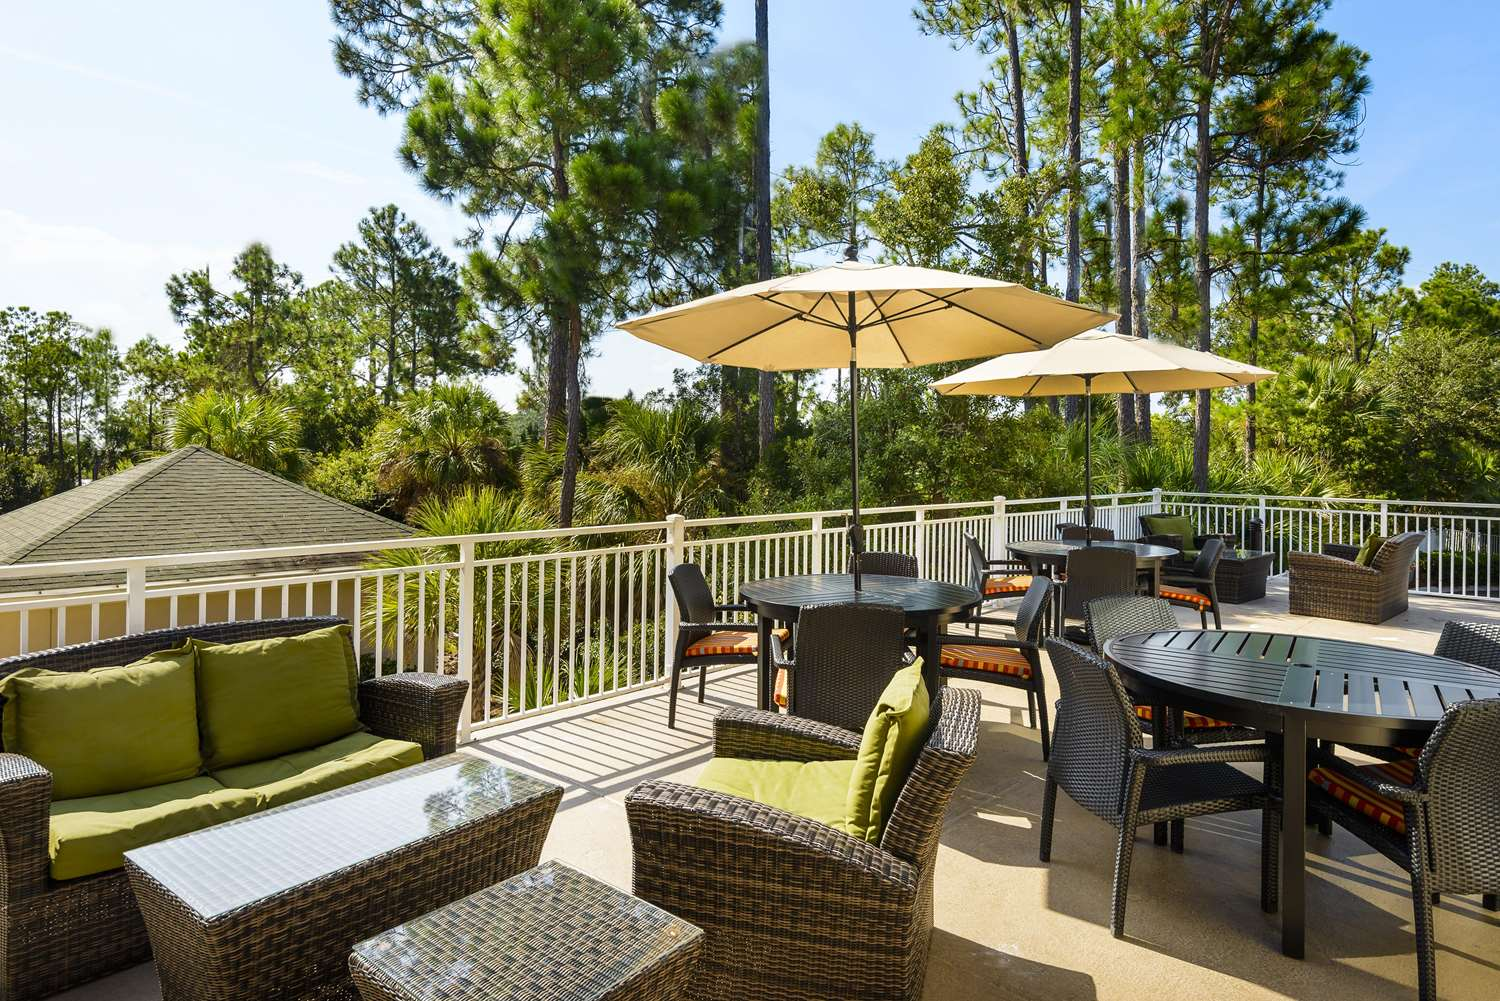 Sun City Hotels: Find hotels in Sun City SC with Reviews